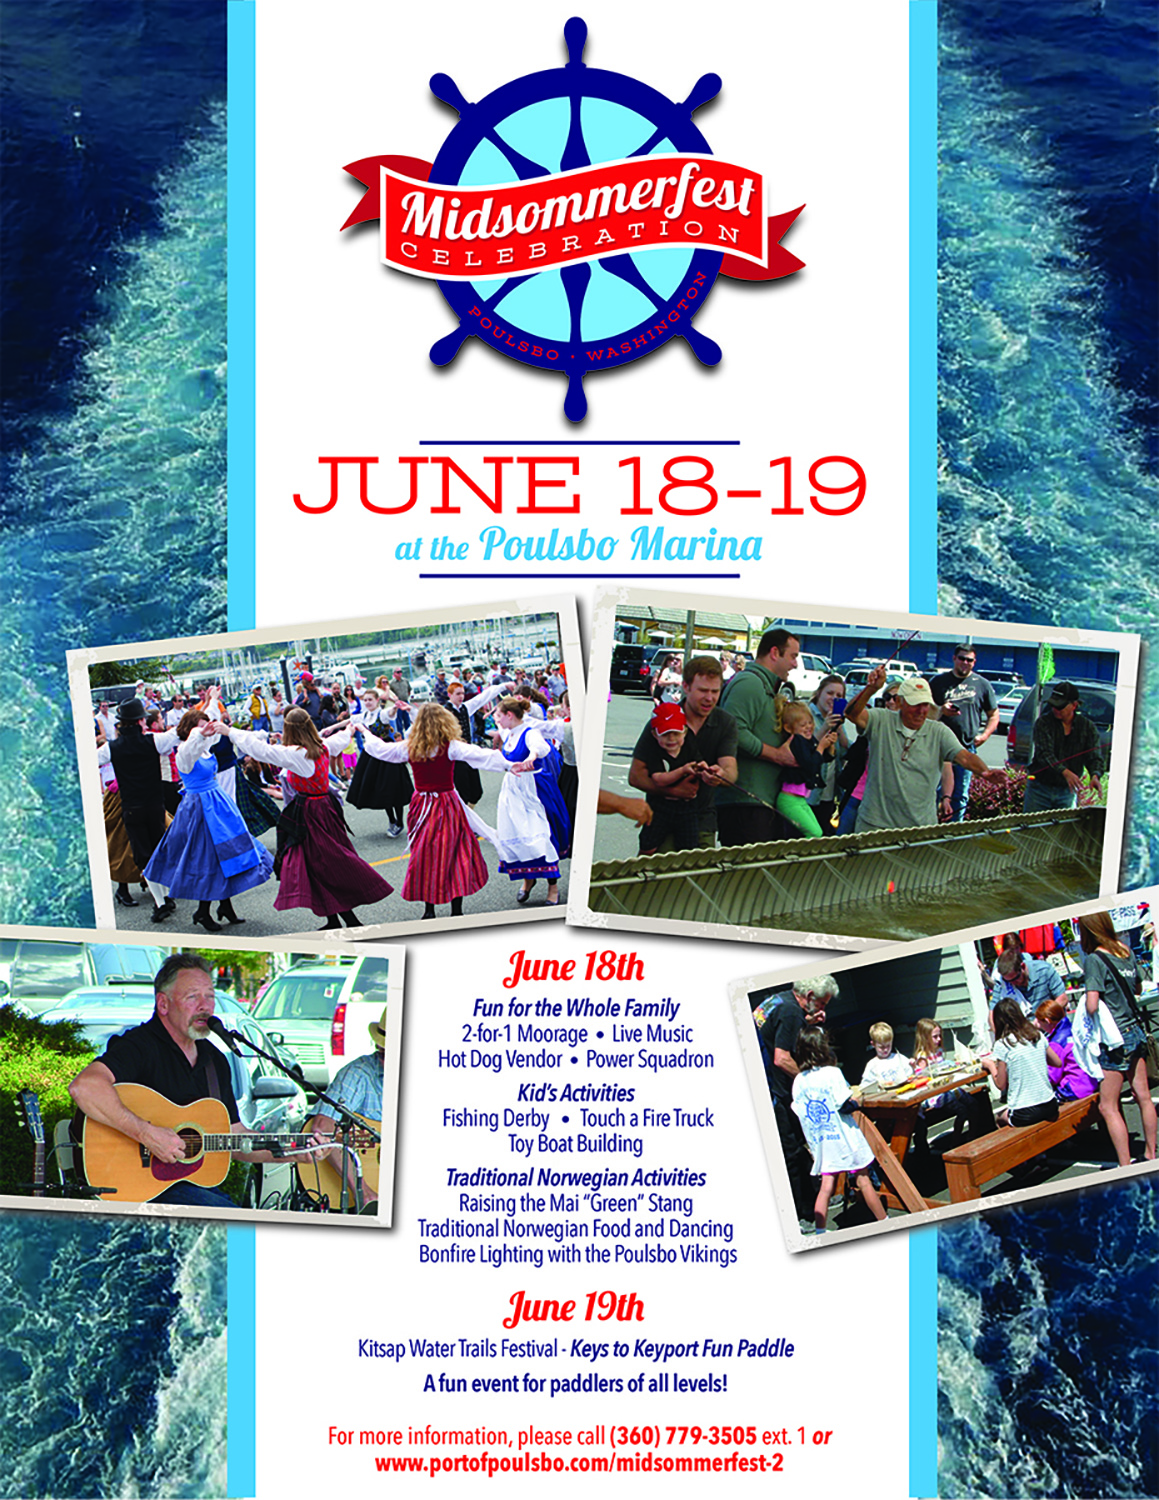 flyer design by tall ideas graphic design for port of poulsbo midsommerfest poster design - Flyer Design Ideas